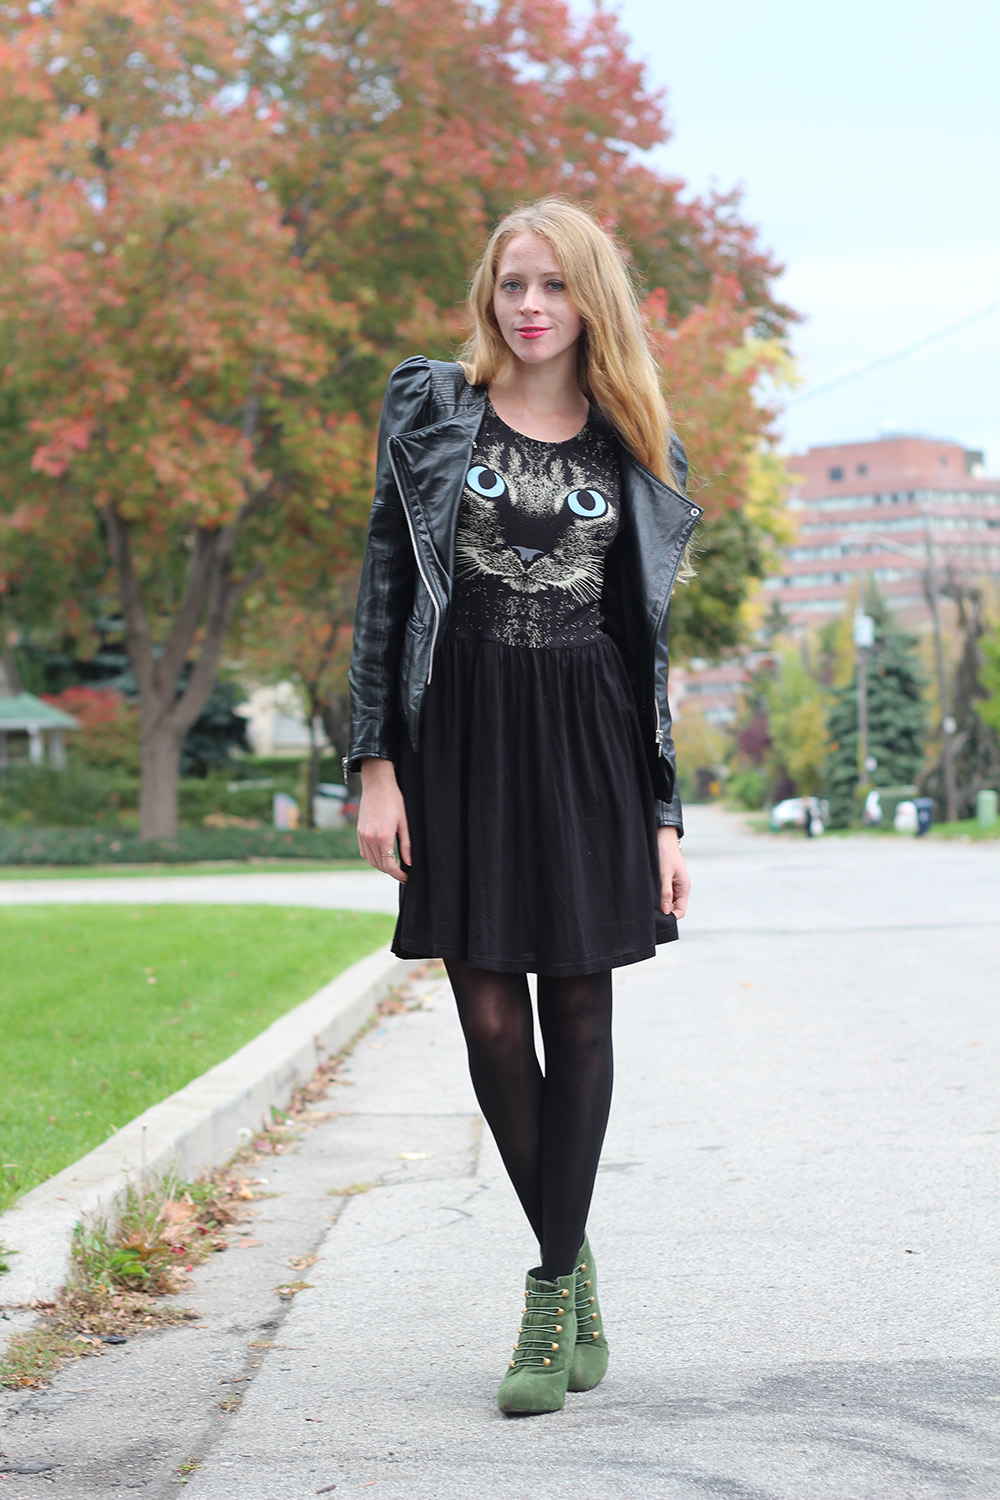 cat dress outfit